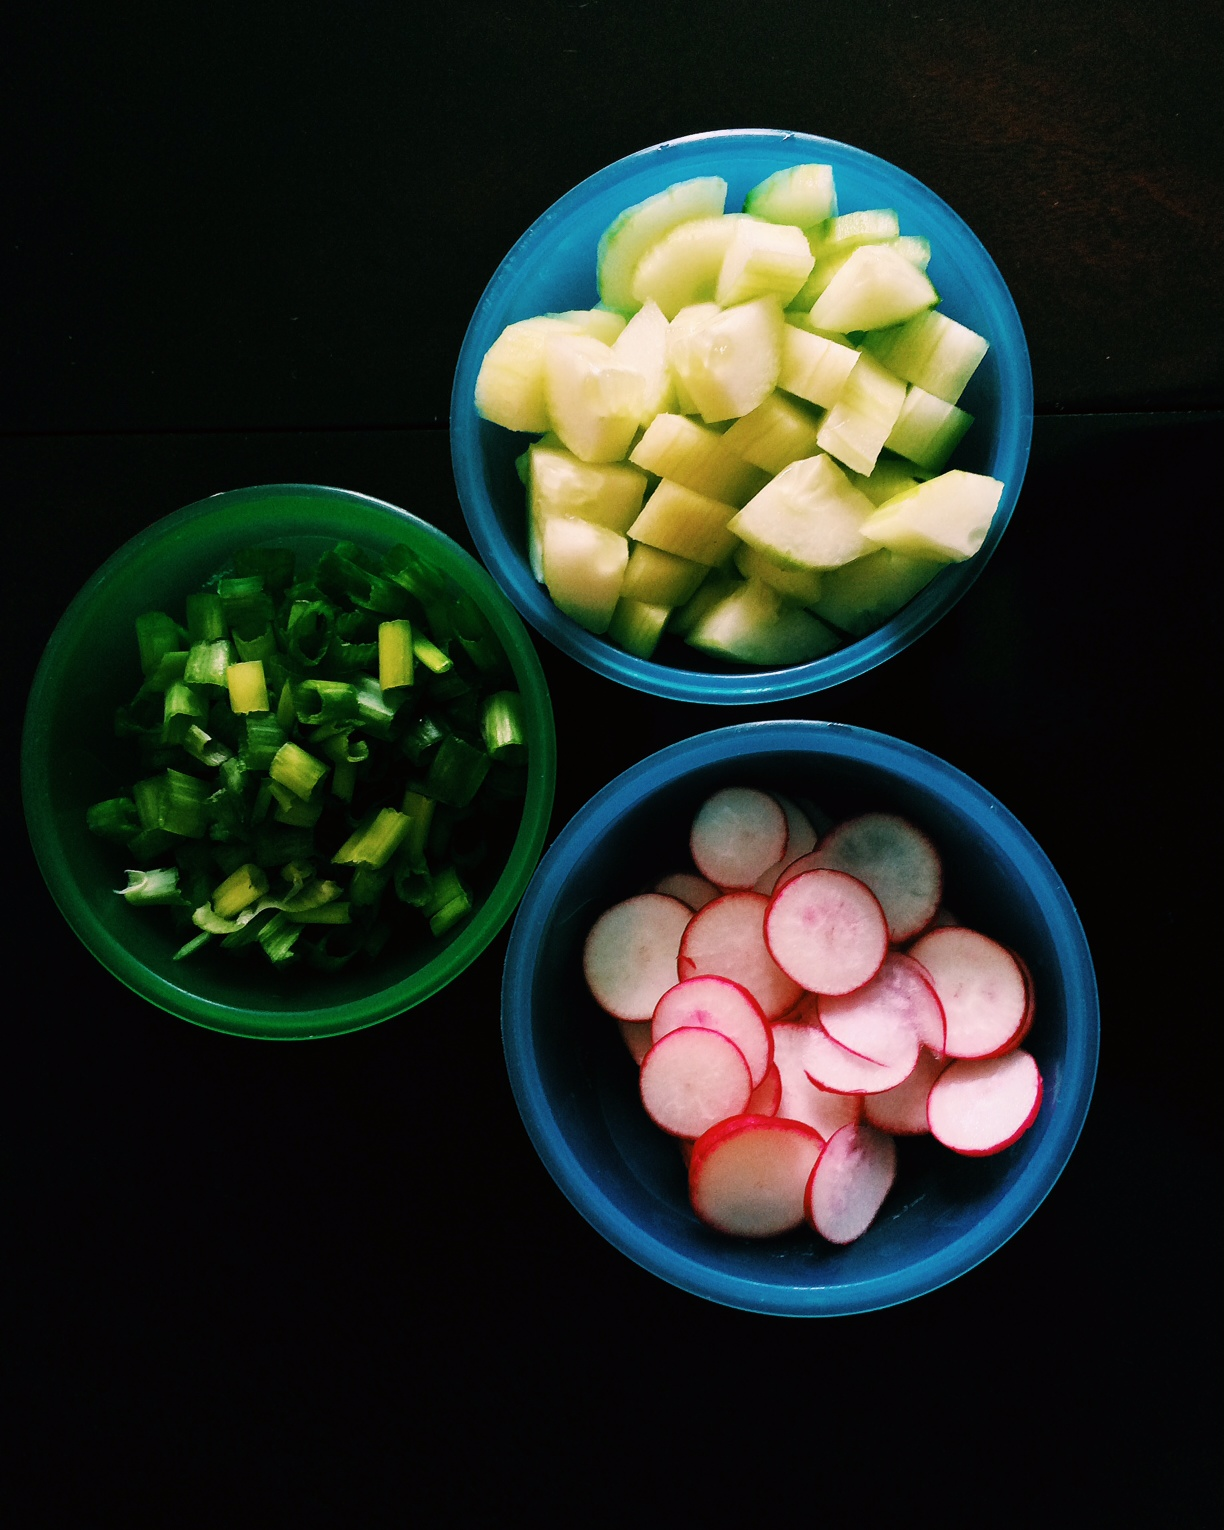 2. Meanwhile chop scallions, radishes, and cucumber.